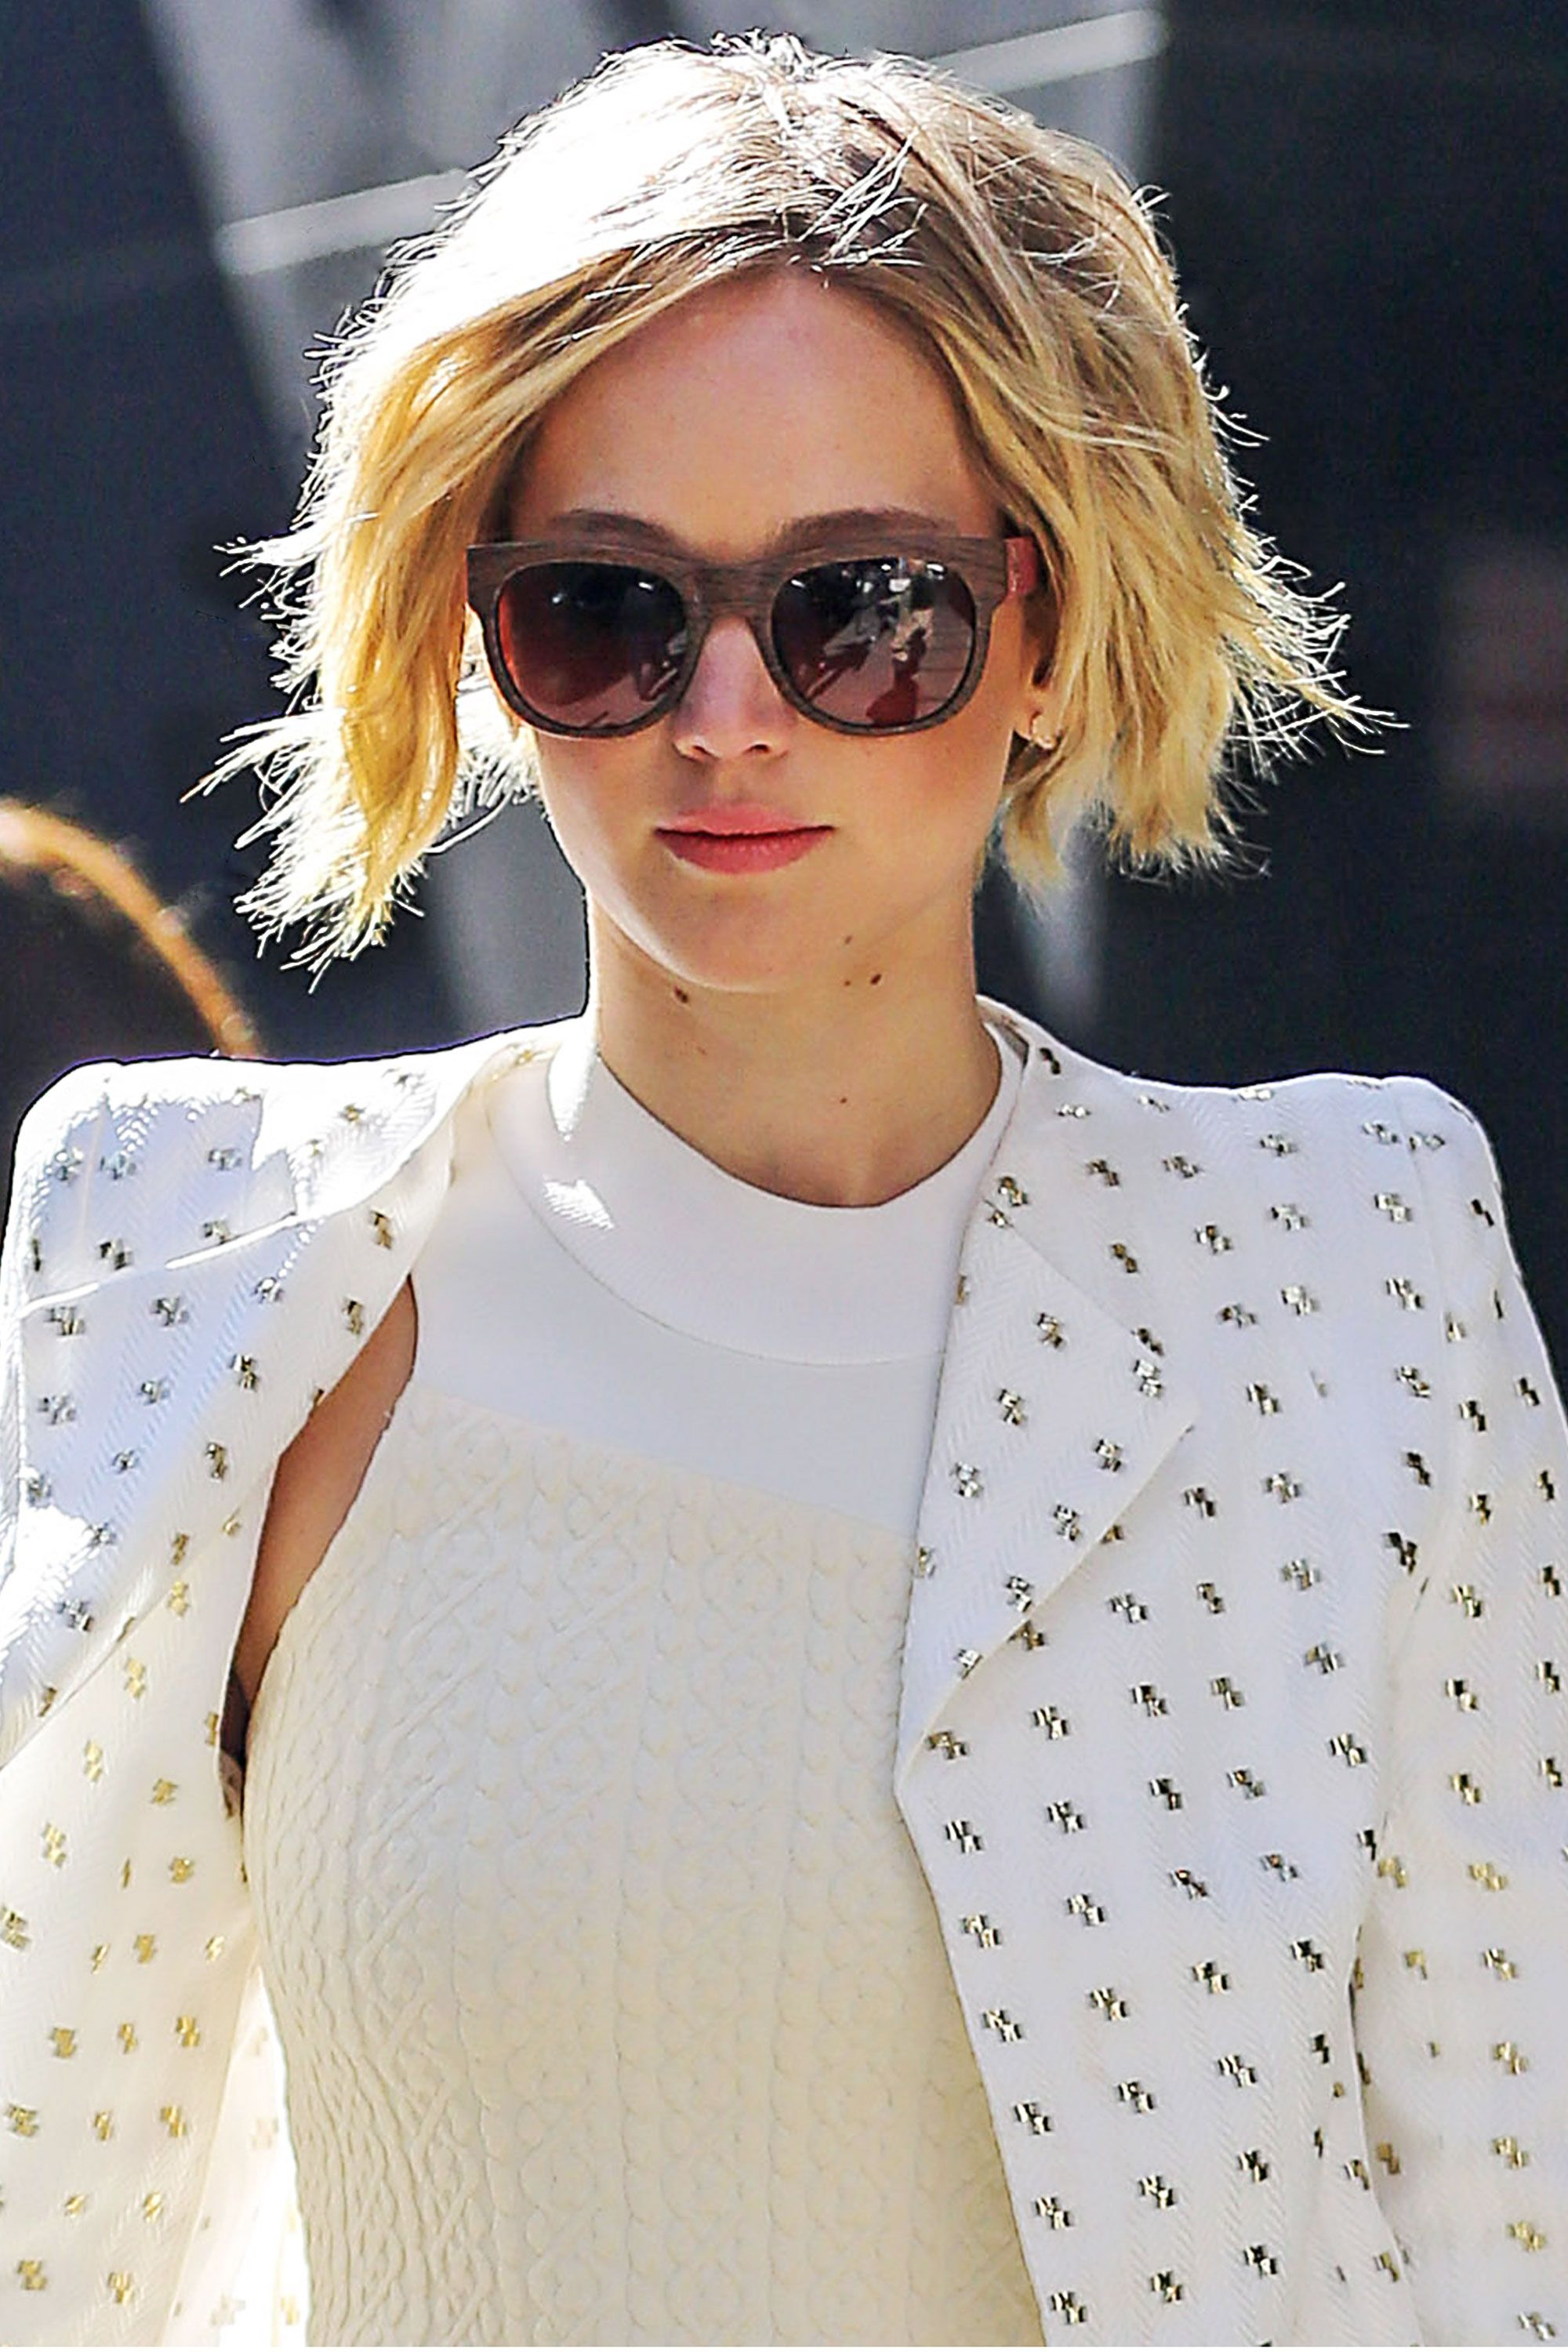 J. Law's Hair Stylist Tells BAZAAR Her Grow-Out Secrets